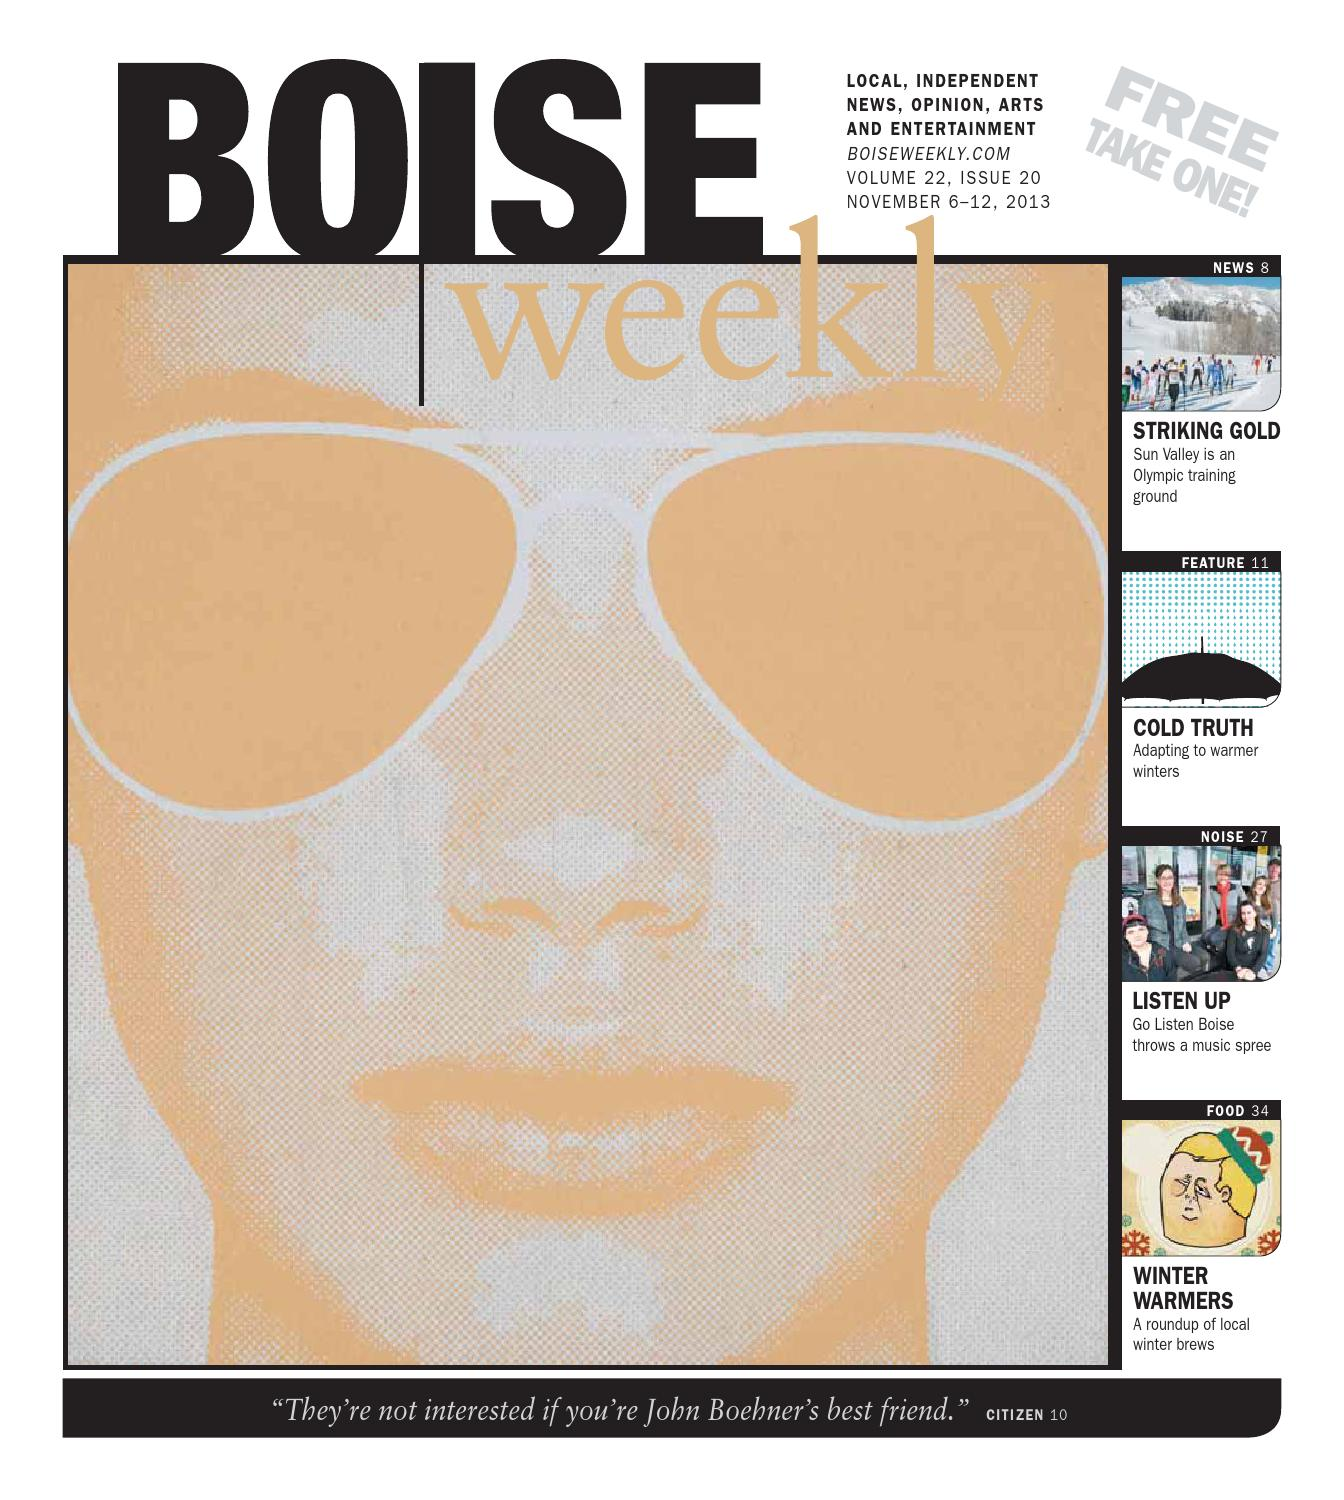 Boise Weekly Volume 22 Issue 20 By